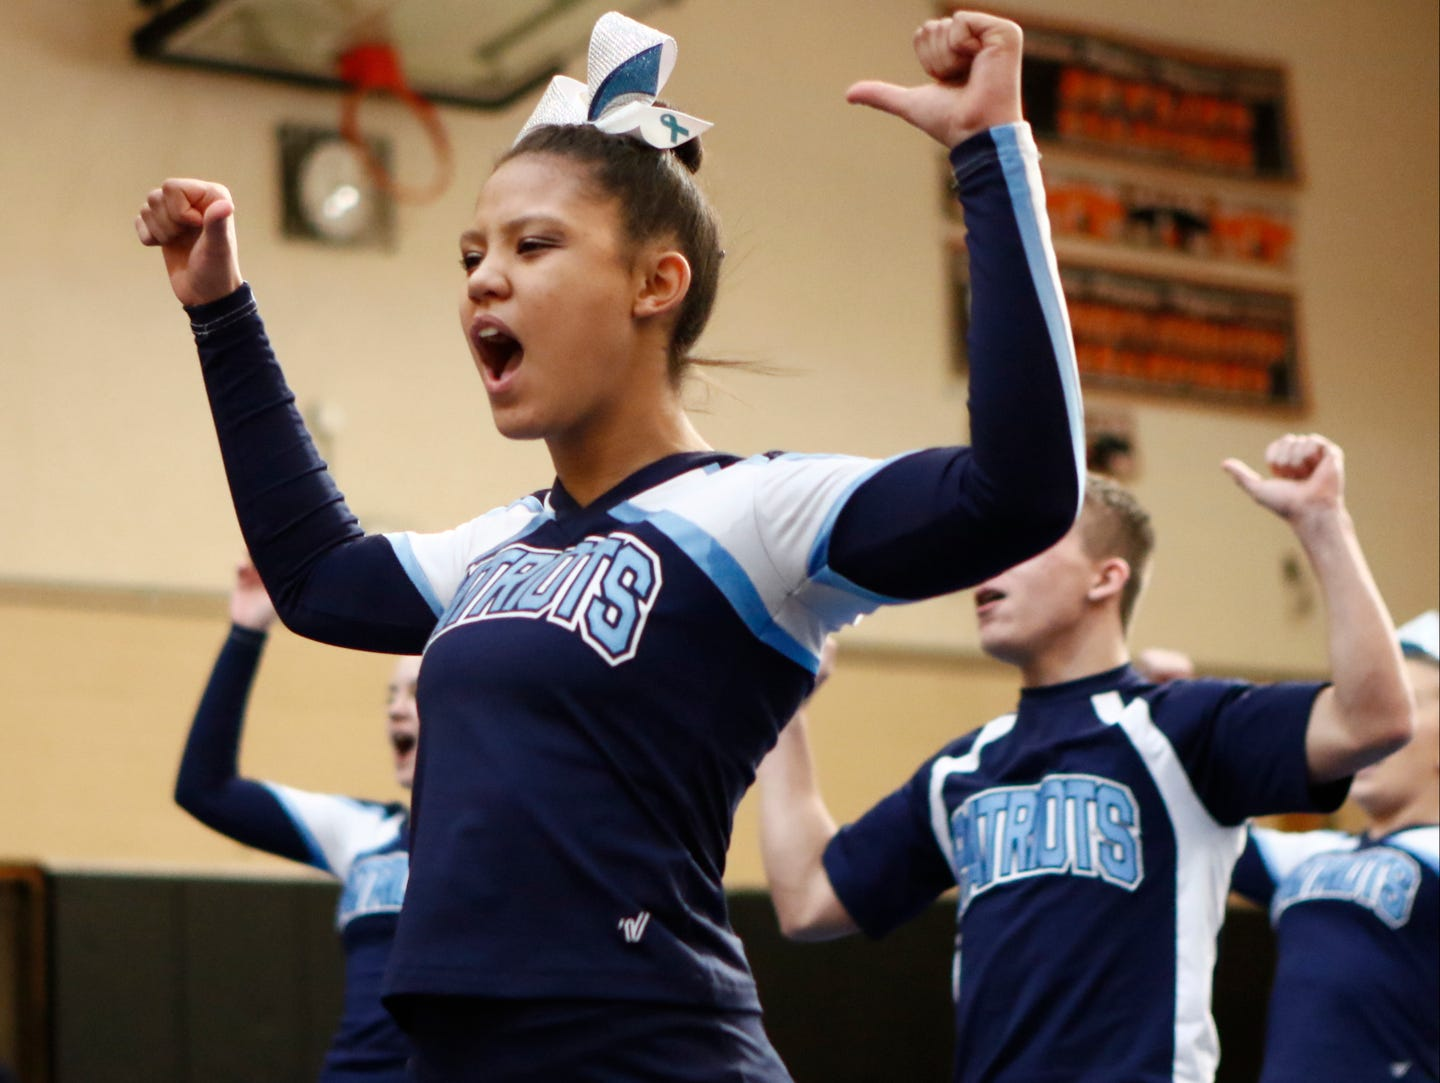 John Jay High School competes in the the section 1 cheerleading championships at White Plains High School in White Plains on Saturday, February 18, 2017.